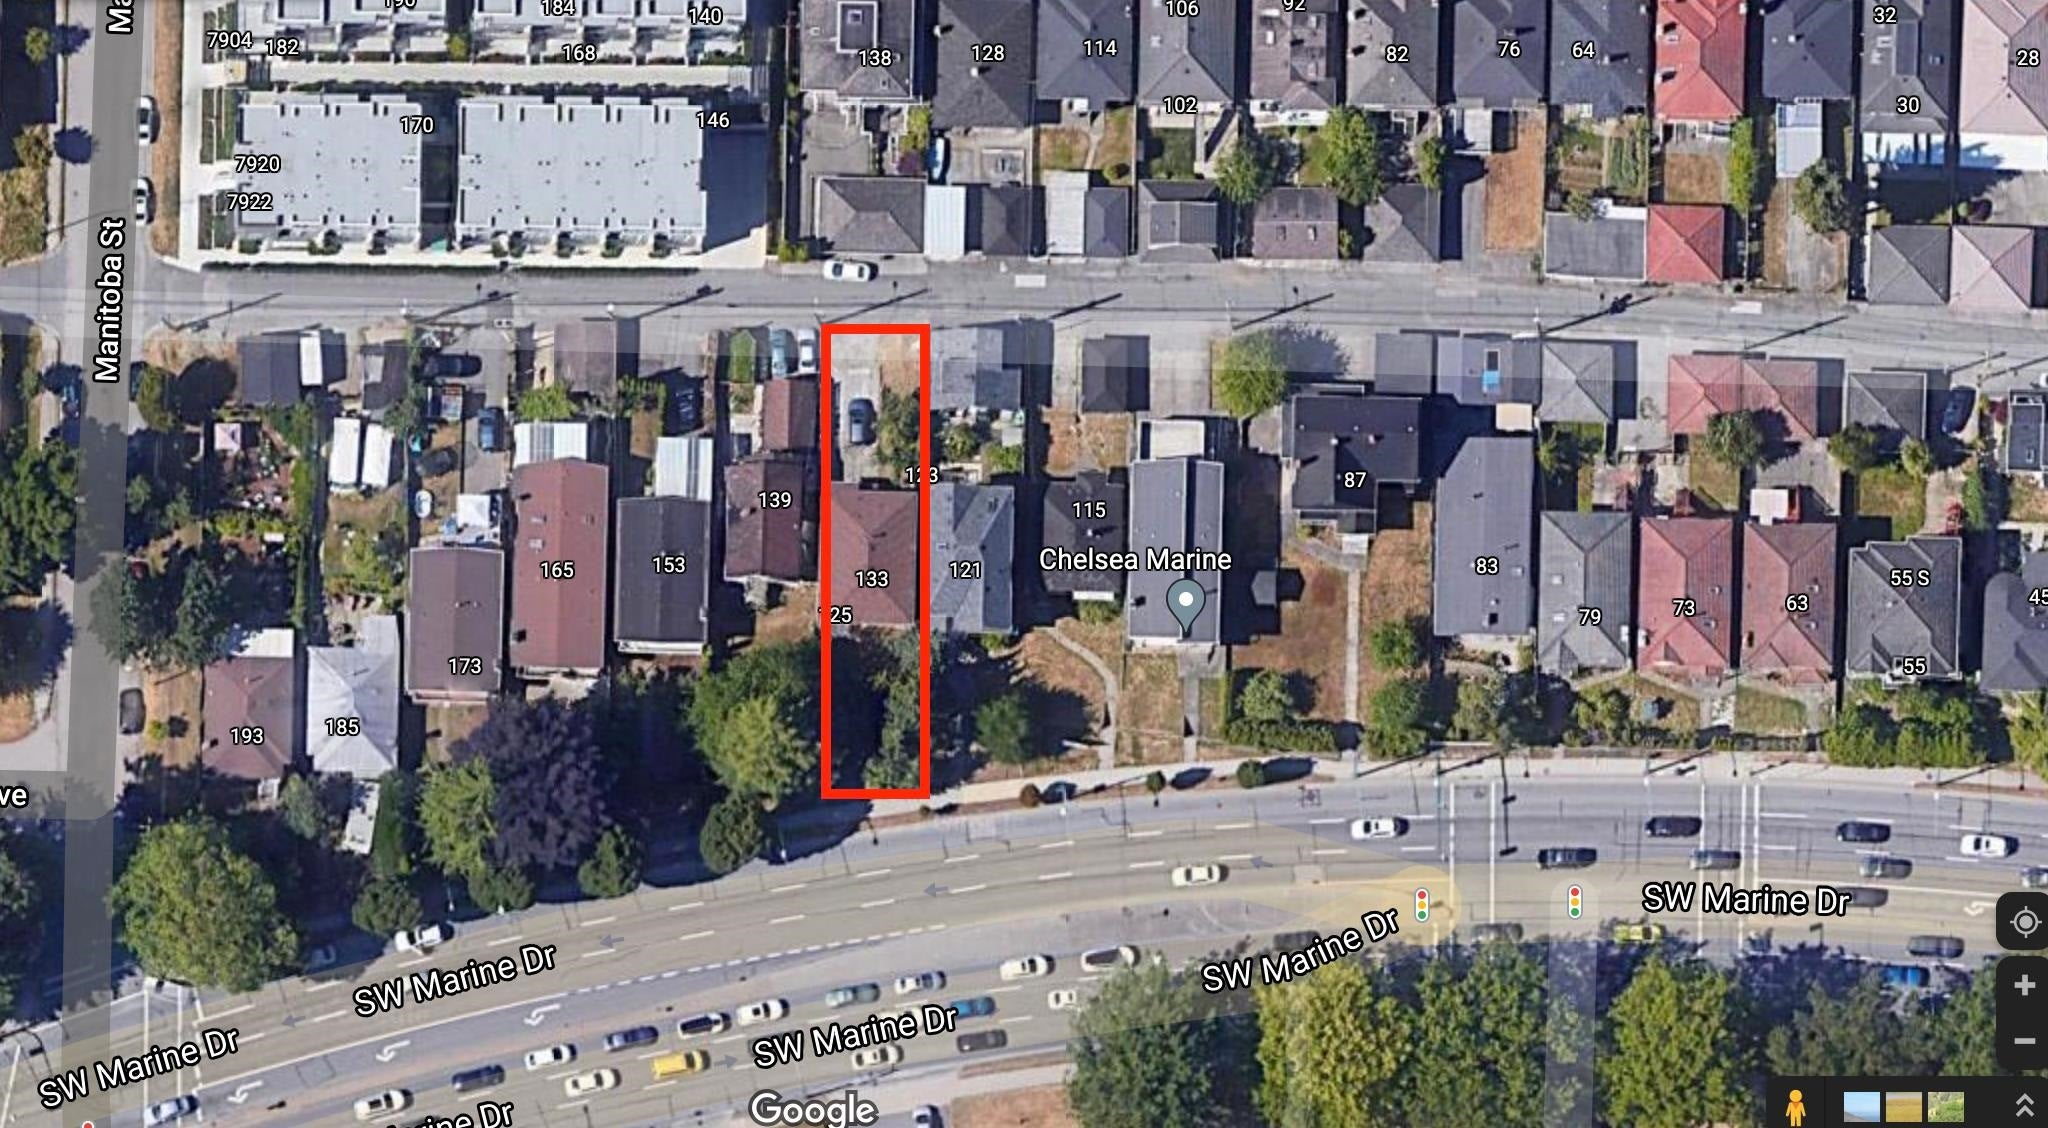 133 SW MARINE DRIVE - Marpole House/Single Family for sale, 2 Bedrooms (R2627849)